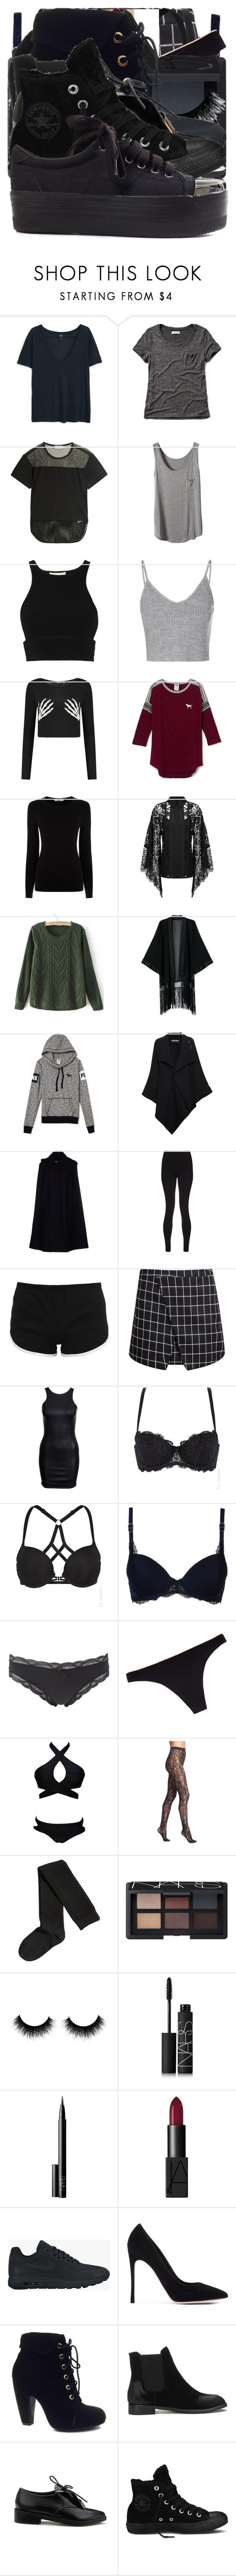 """Rose Potter"" by grandmasfood ❤ liked on Polyvore featuring MANGO, Abercrombie & Fitch, adidas, Jonathan Simkhai, Glamorous, Oasis, Elie Saab, Roland Mouret, Prada and Sweaty Betty"